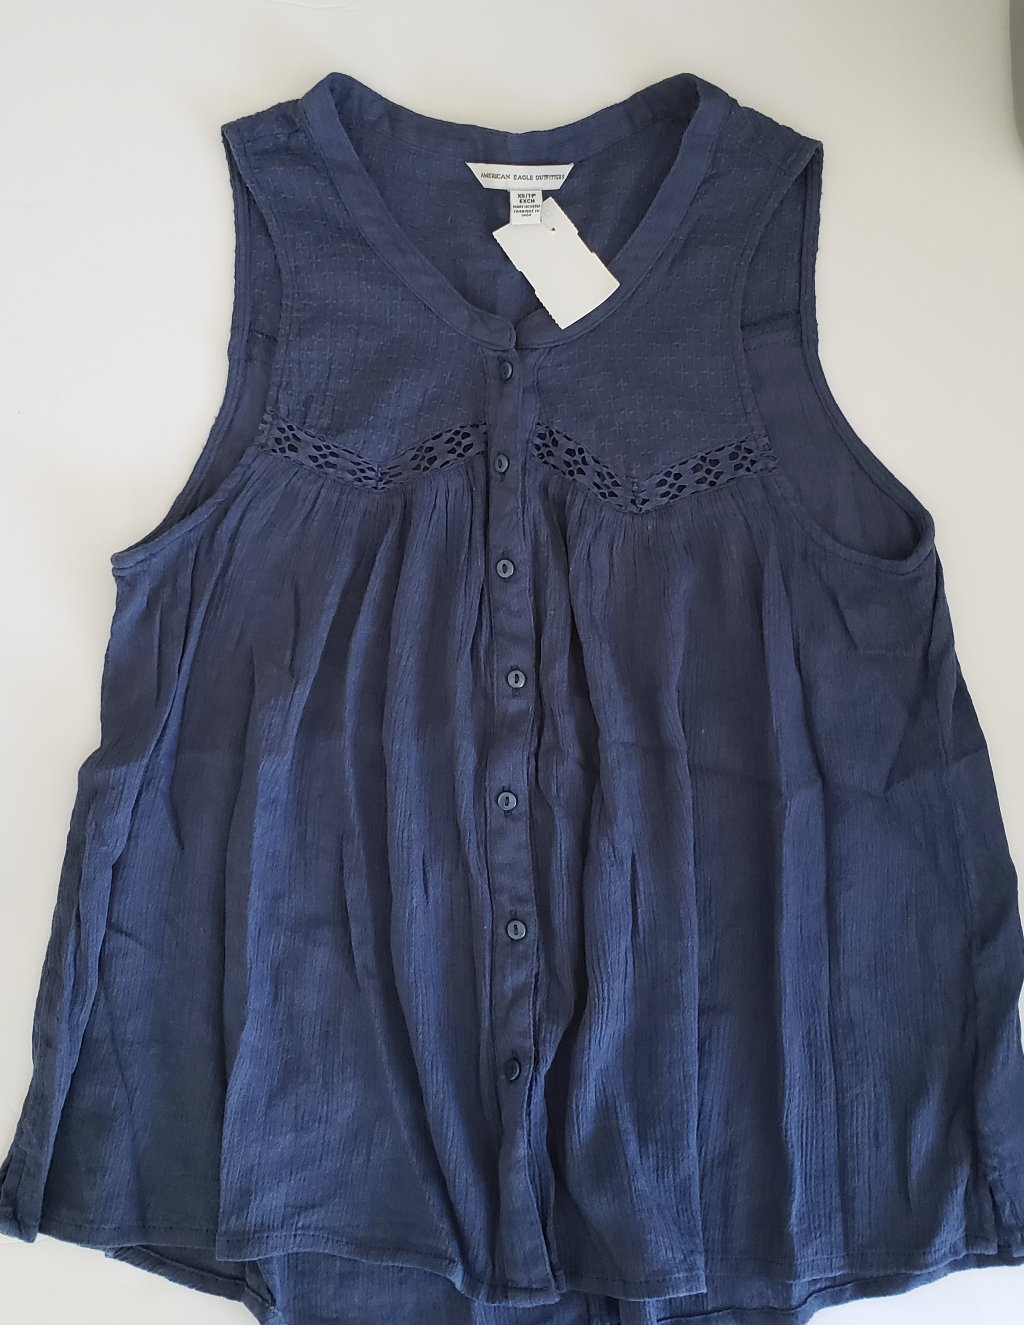 Gently Used Women's American Eagle Top Size XS